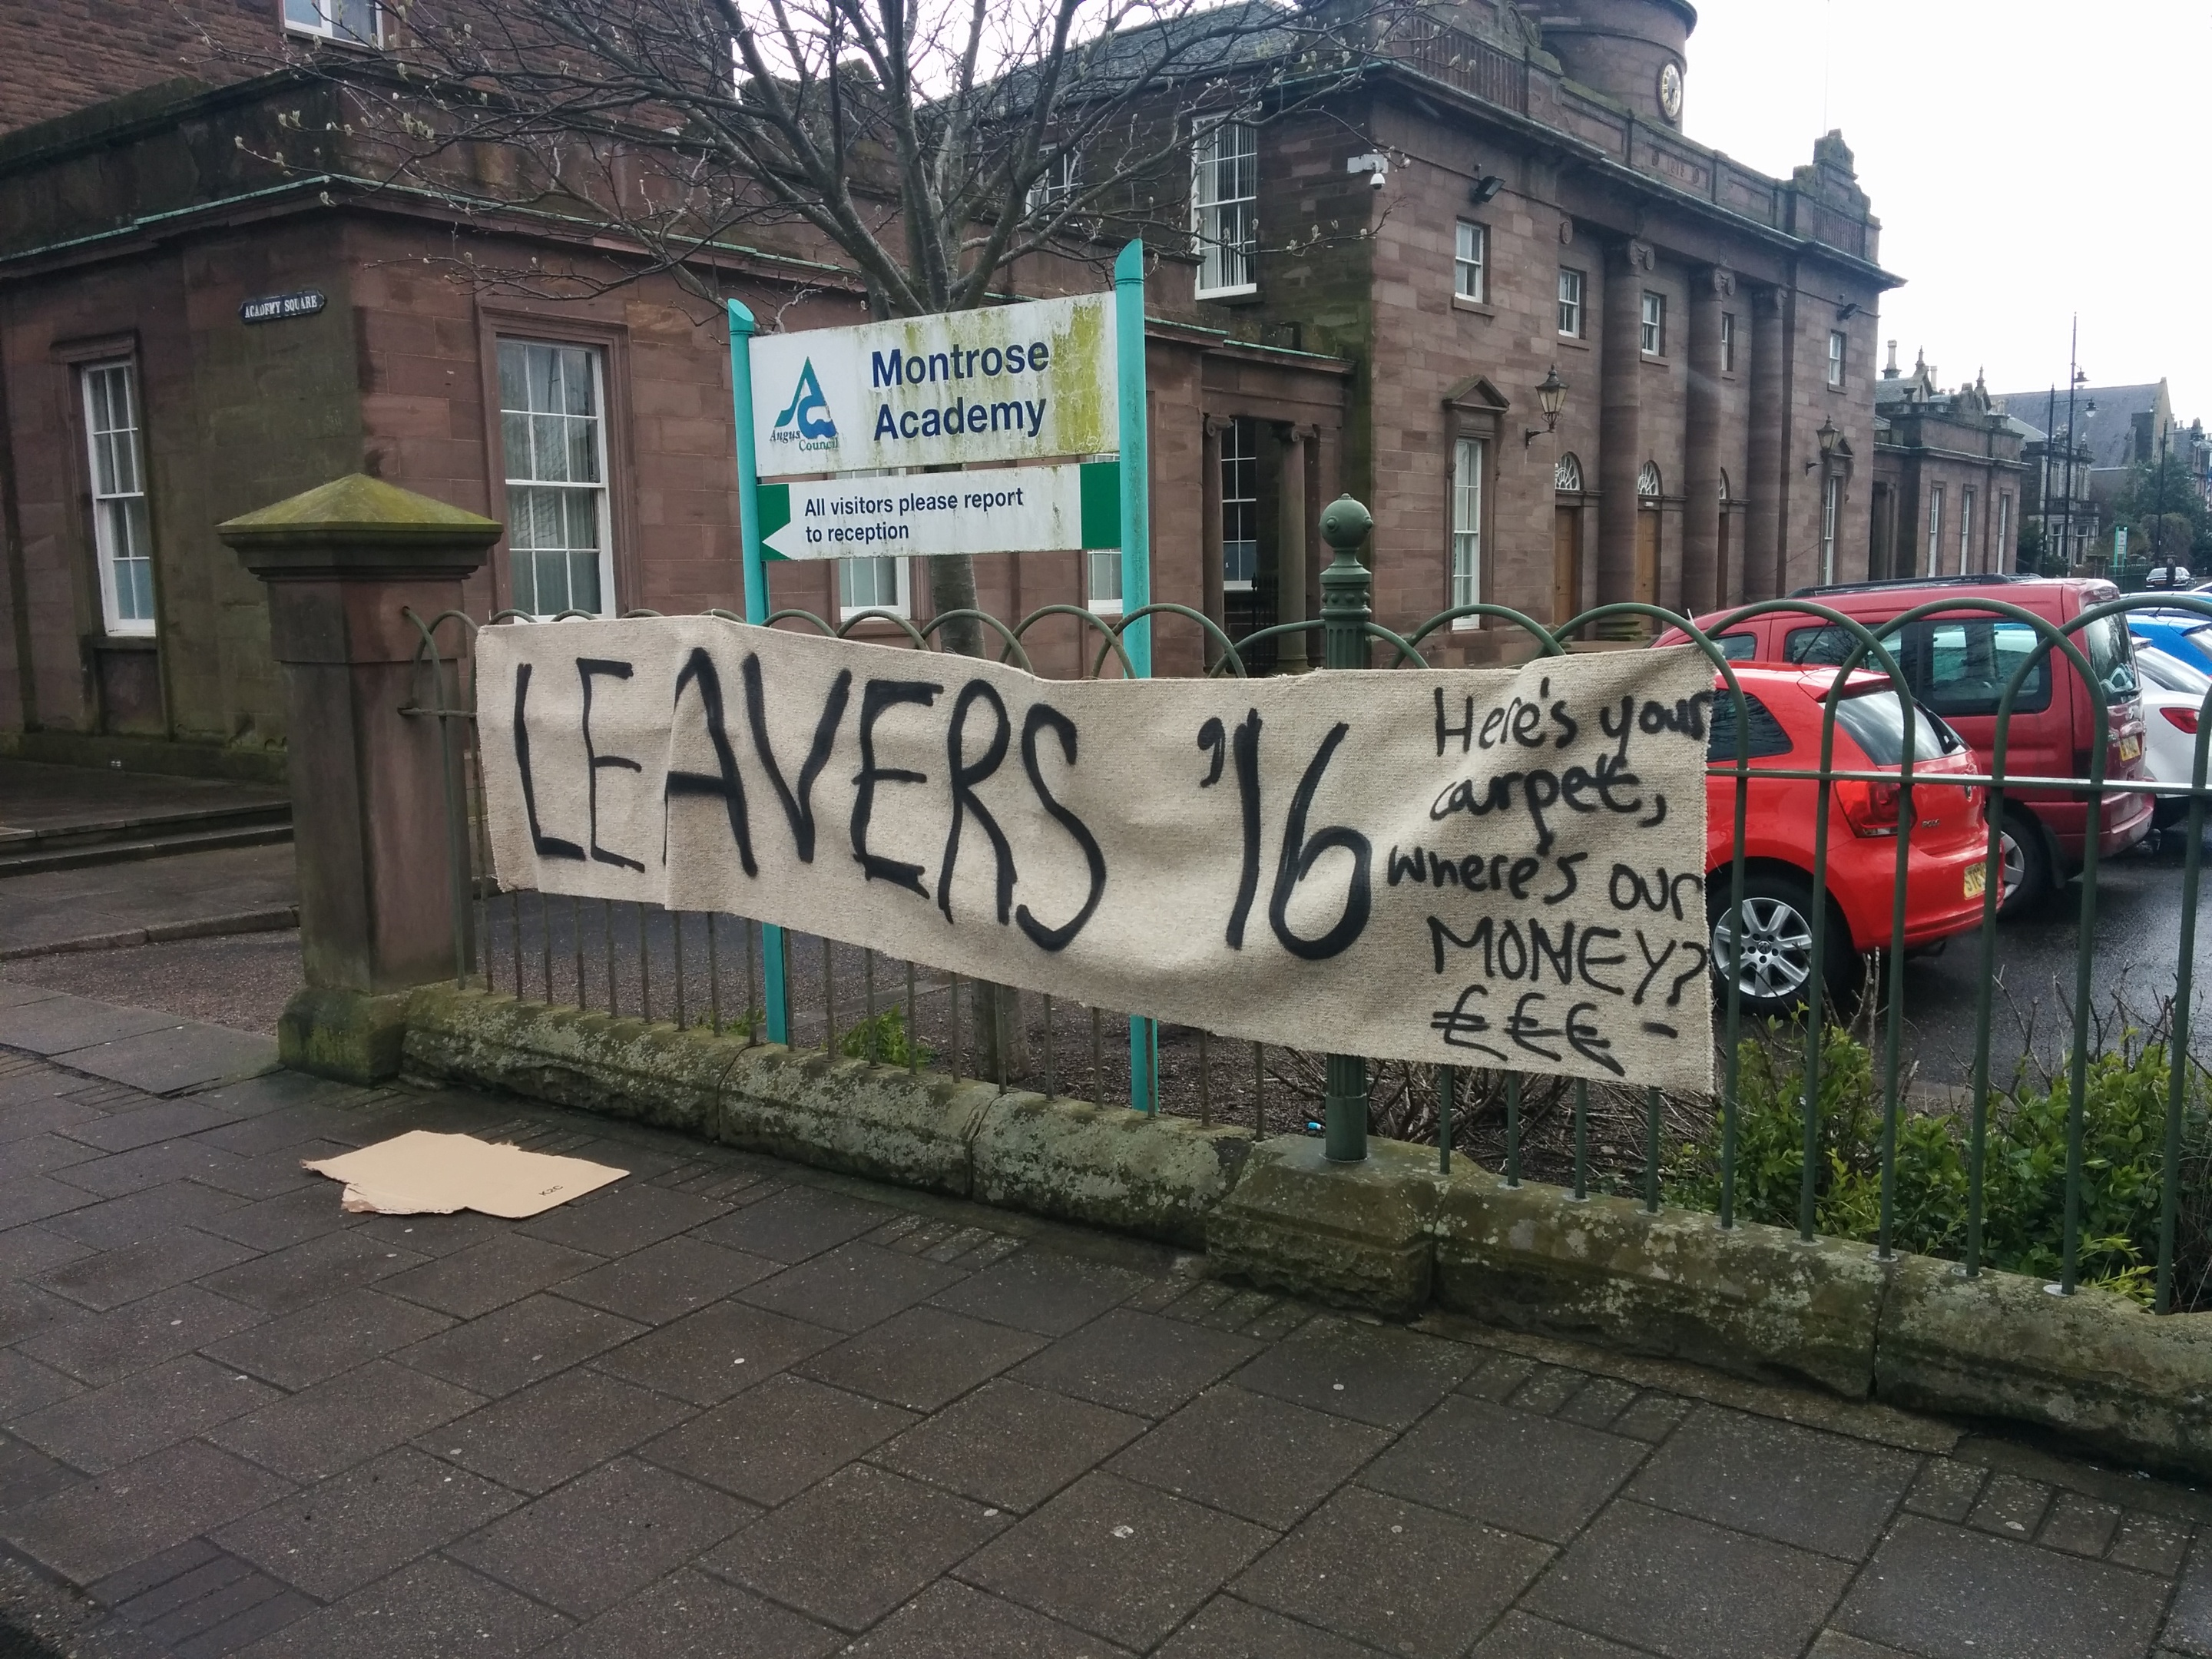 A banner at the protest at Montrose Academy.